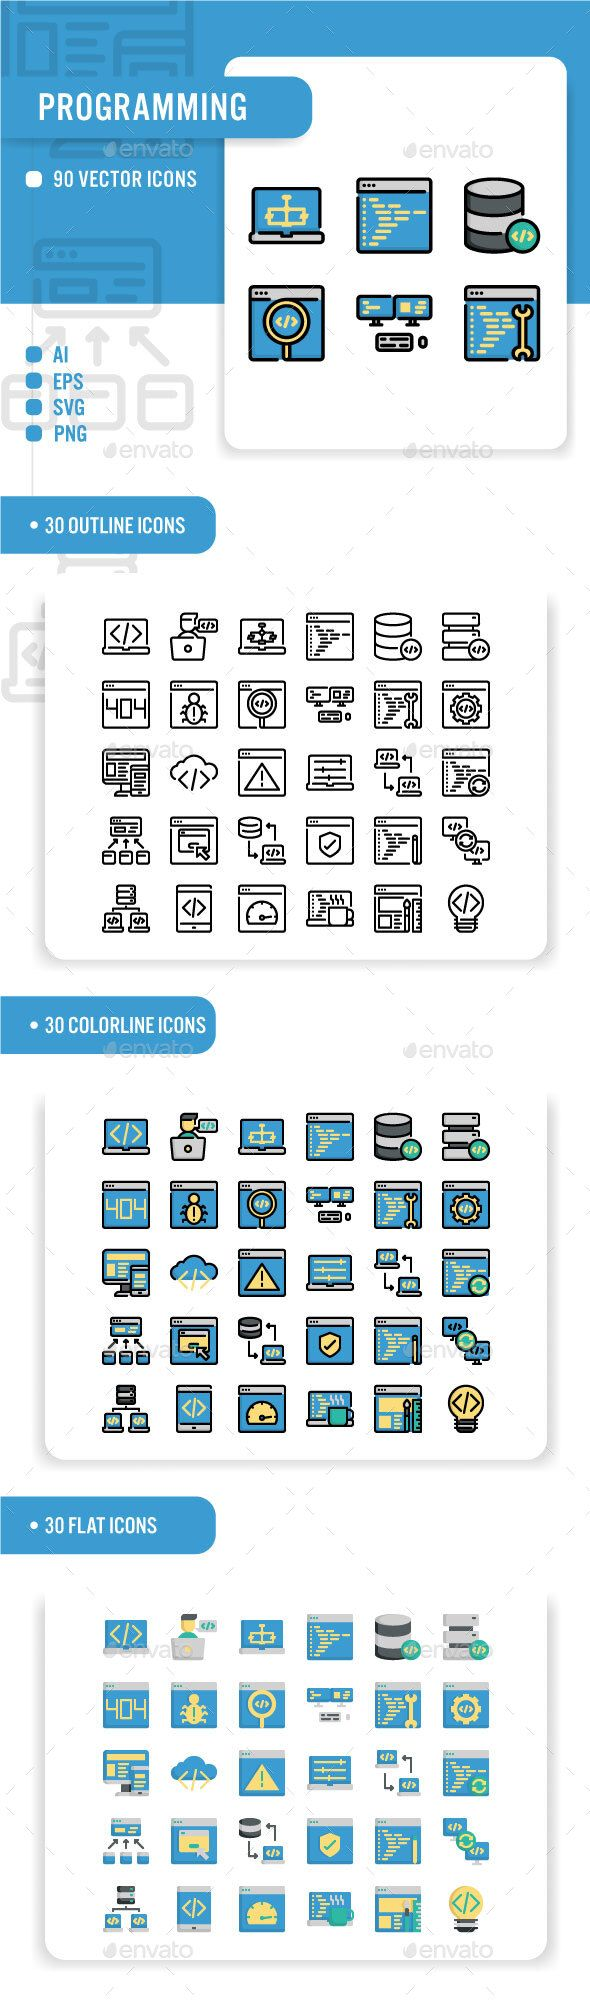 Programming. Fully customisable set of icons. icon